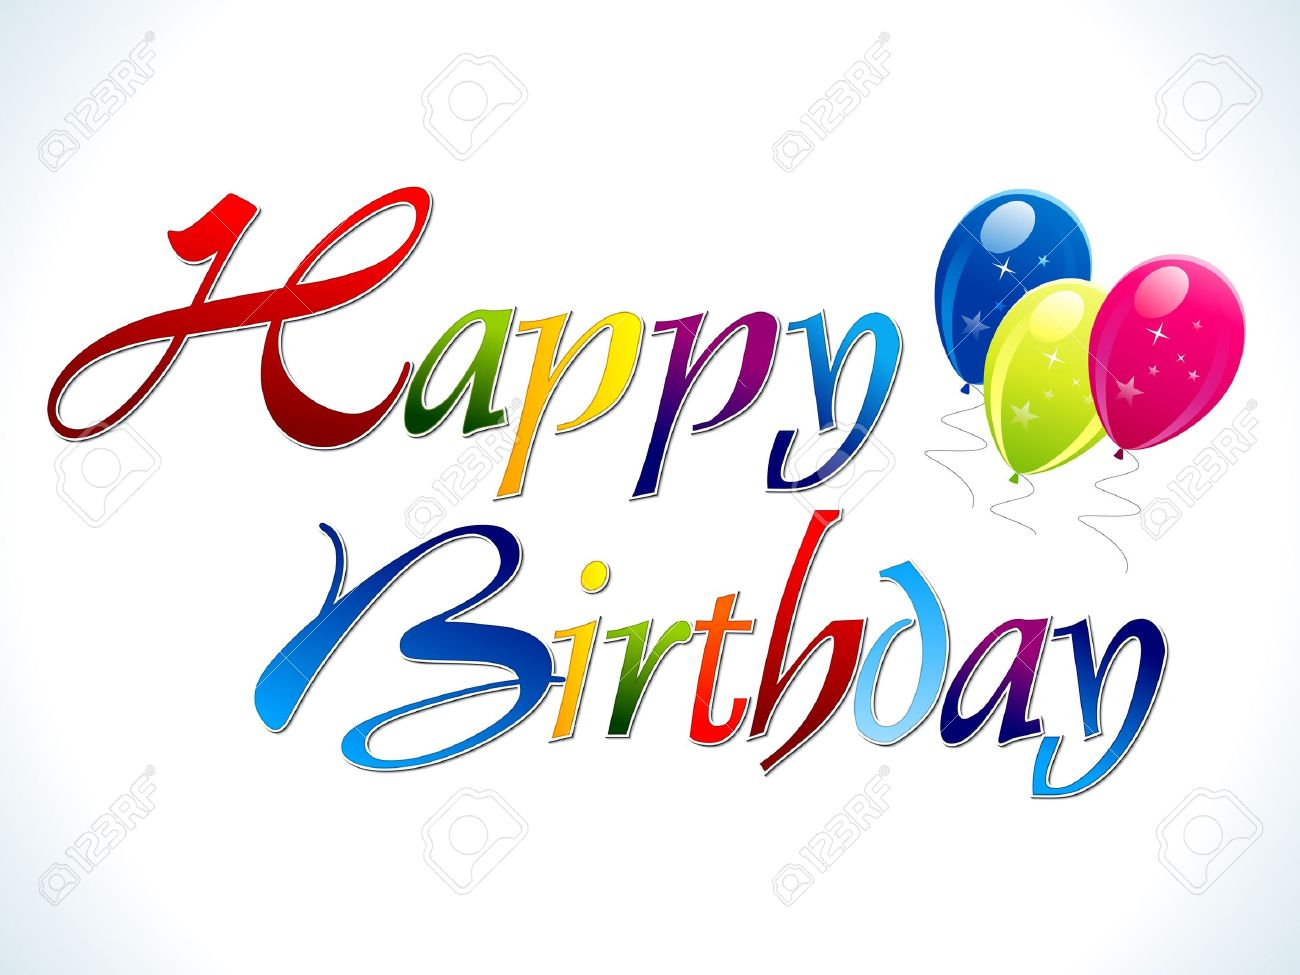 Abstract Colorful Happy Birthday Text Vector Illustration Royalty Free Cliparts Vectors And Stock Illustration Image 12491086